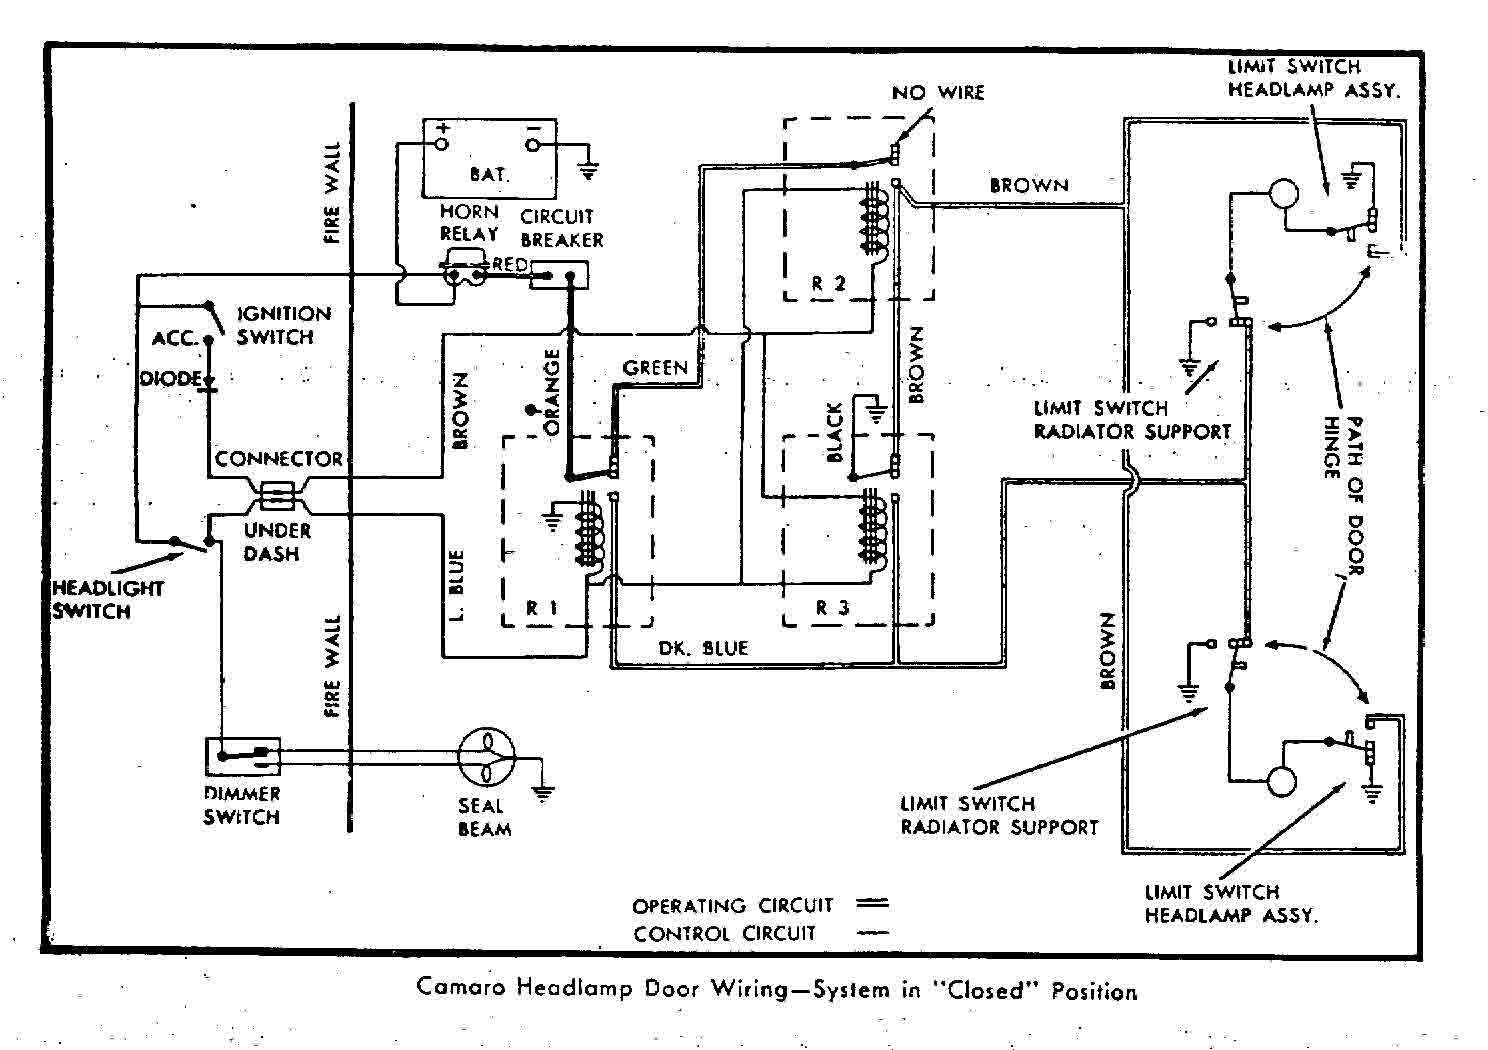 chevelle horn relay wiring diagram images wiring diagram diagram as well 69 camaro wiper motor wiring in addition